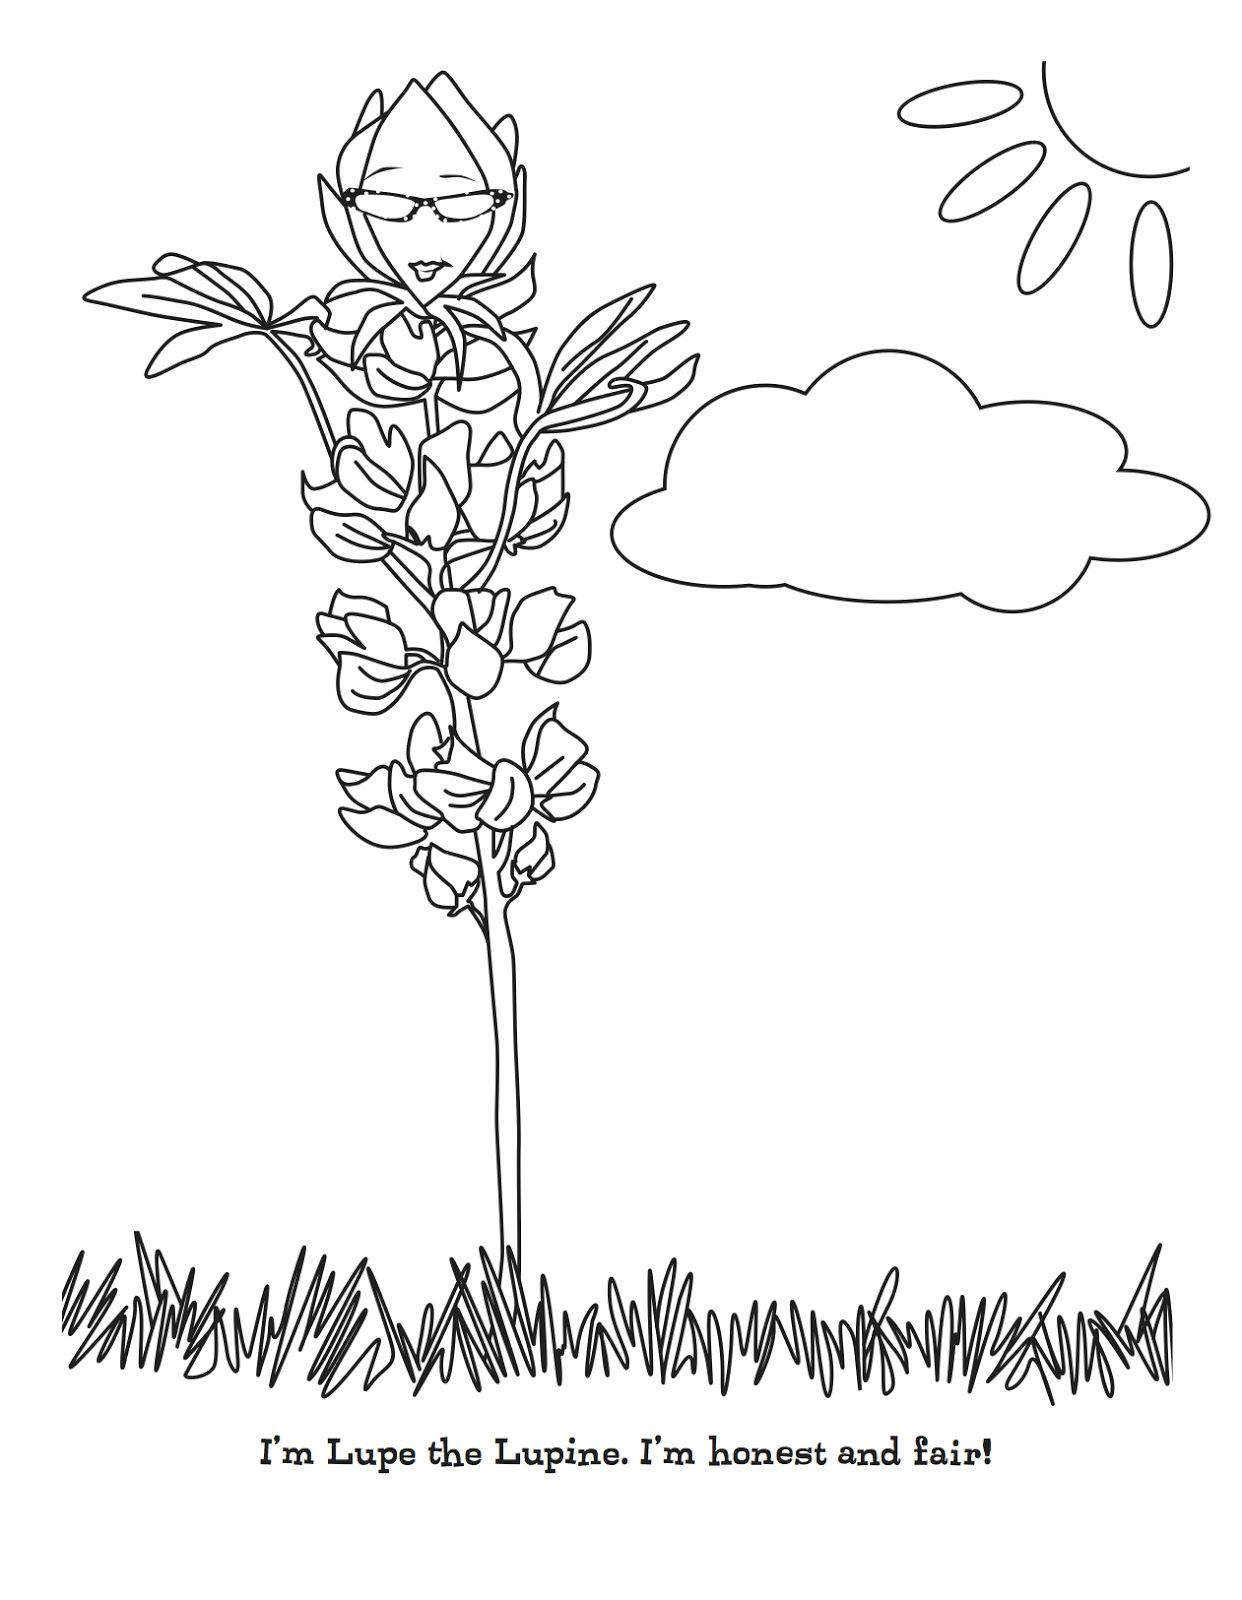 Daisy Honest And Fair Coloring Pages